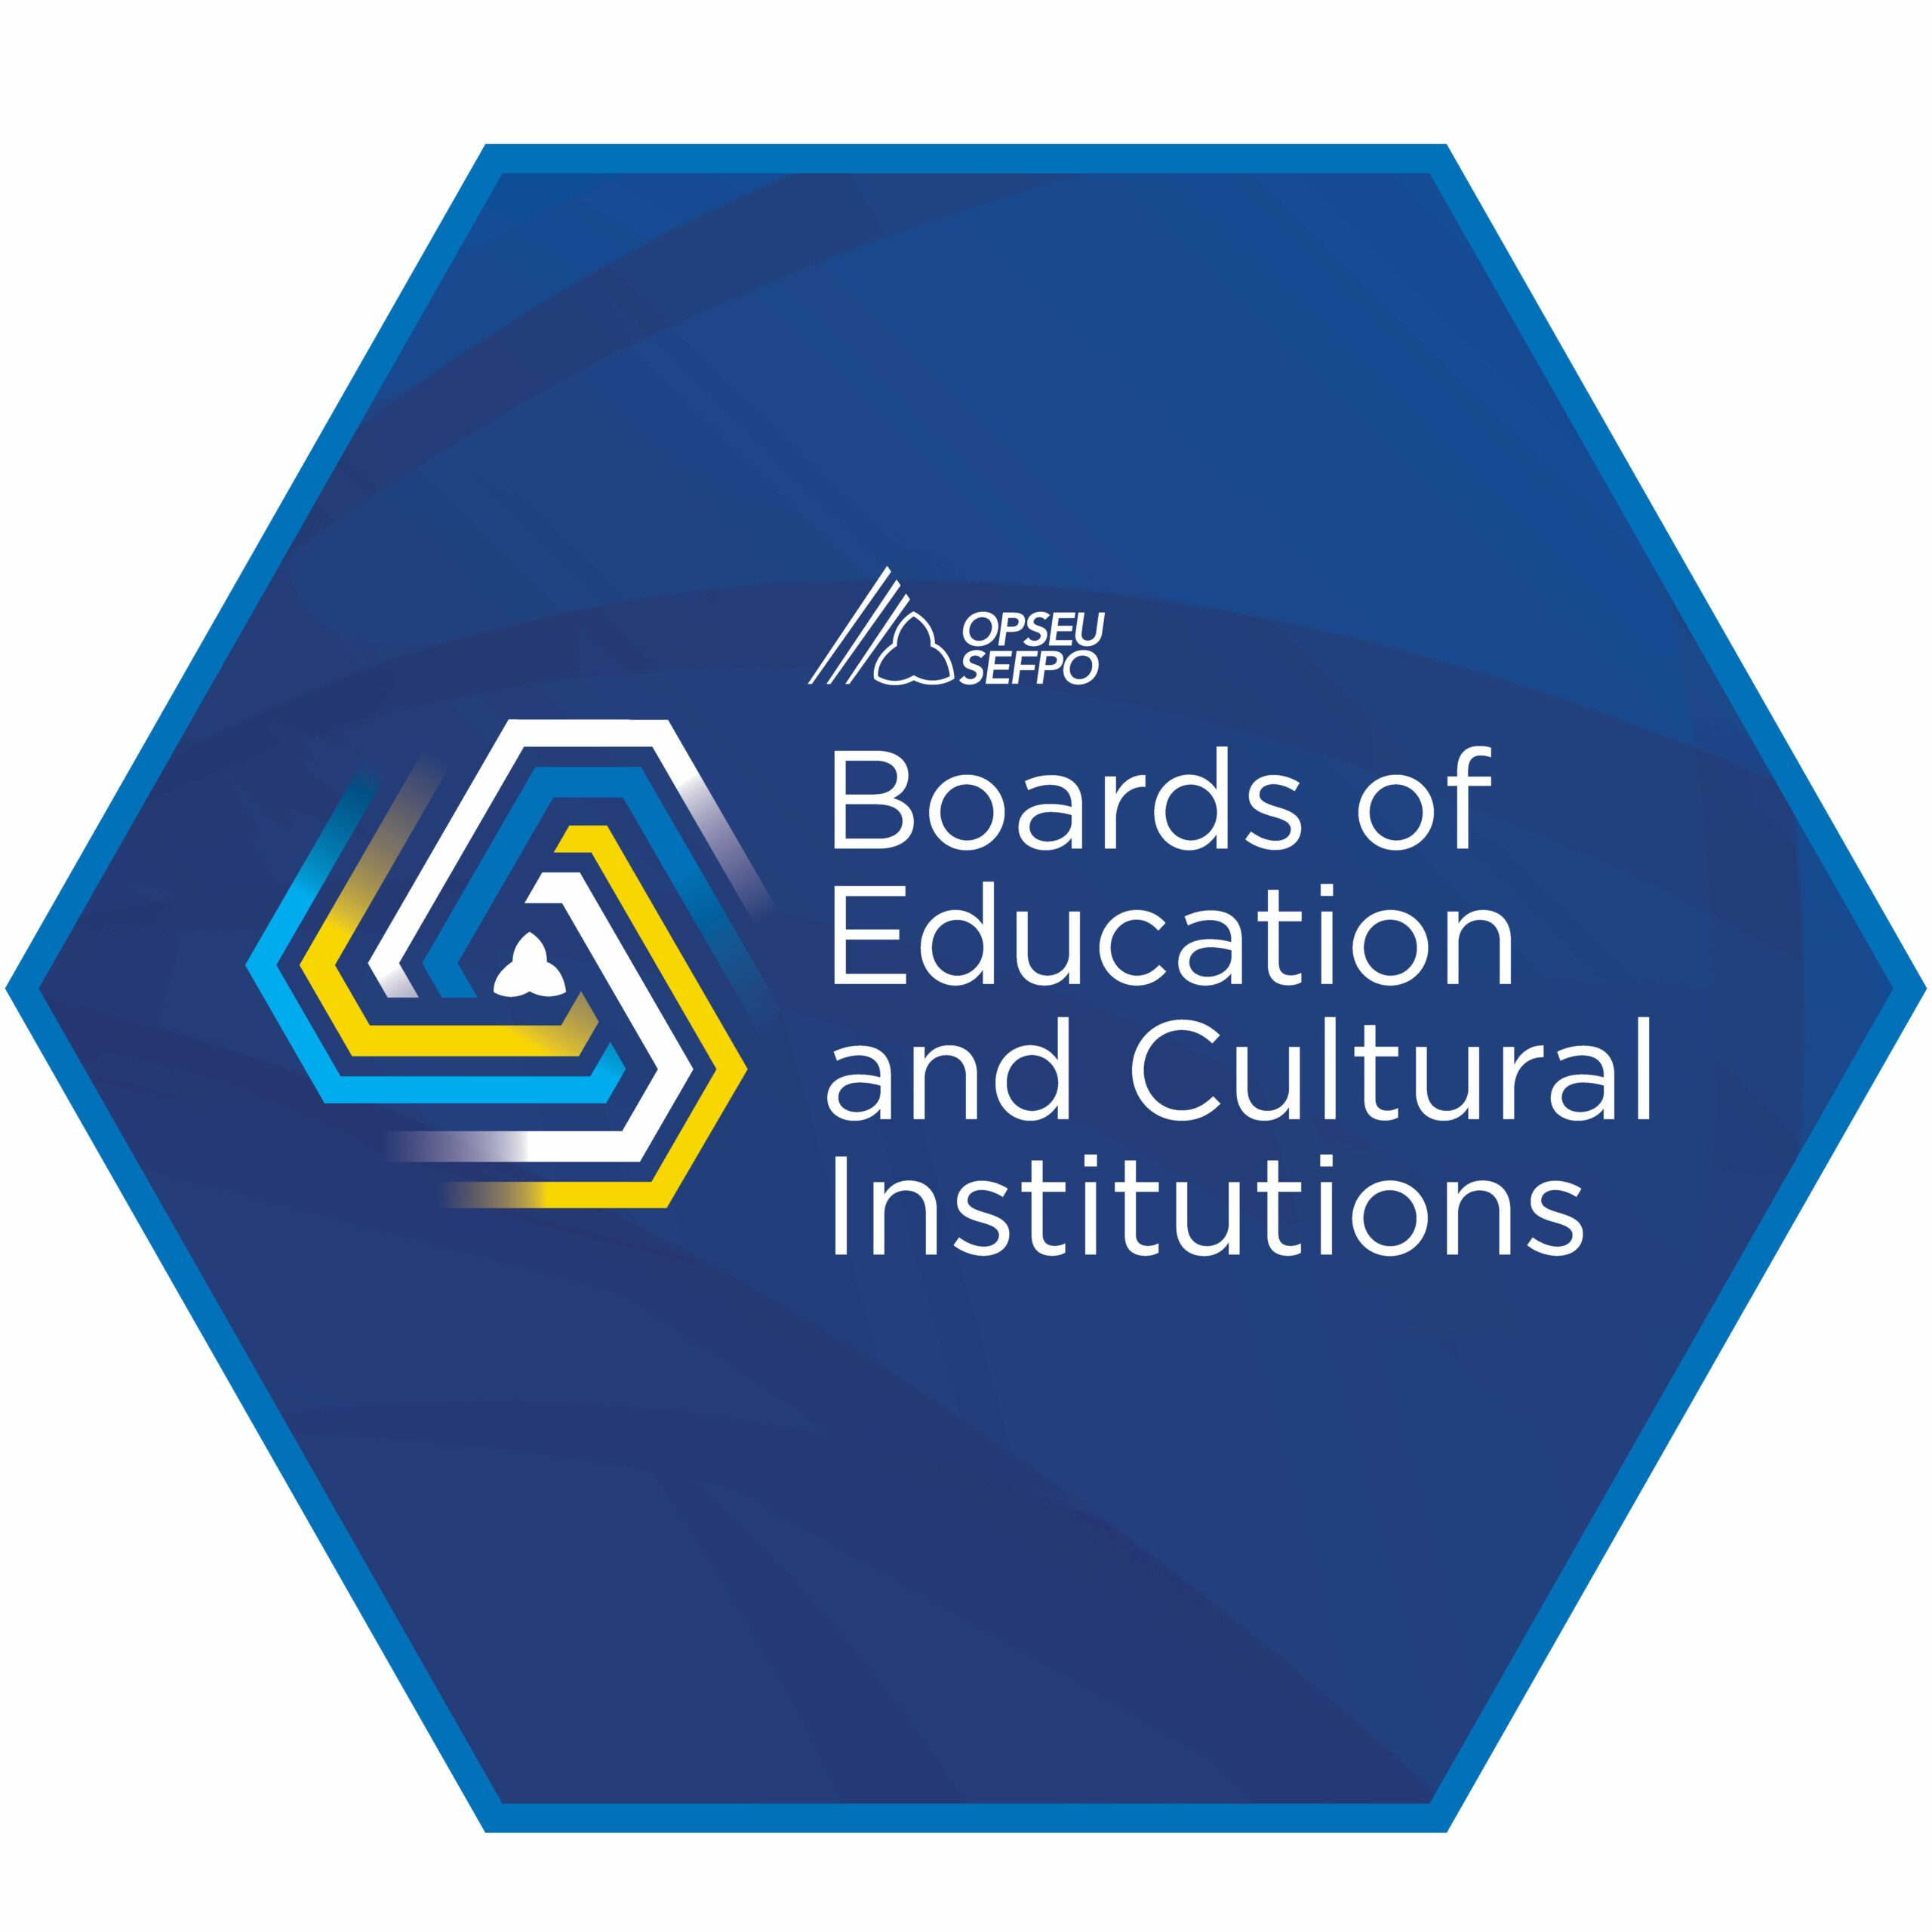 OPSEU/SEFPO Boards of Education and Cultural Institutions